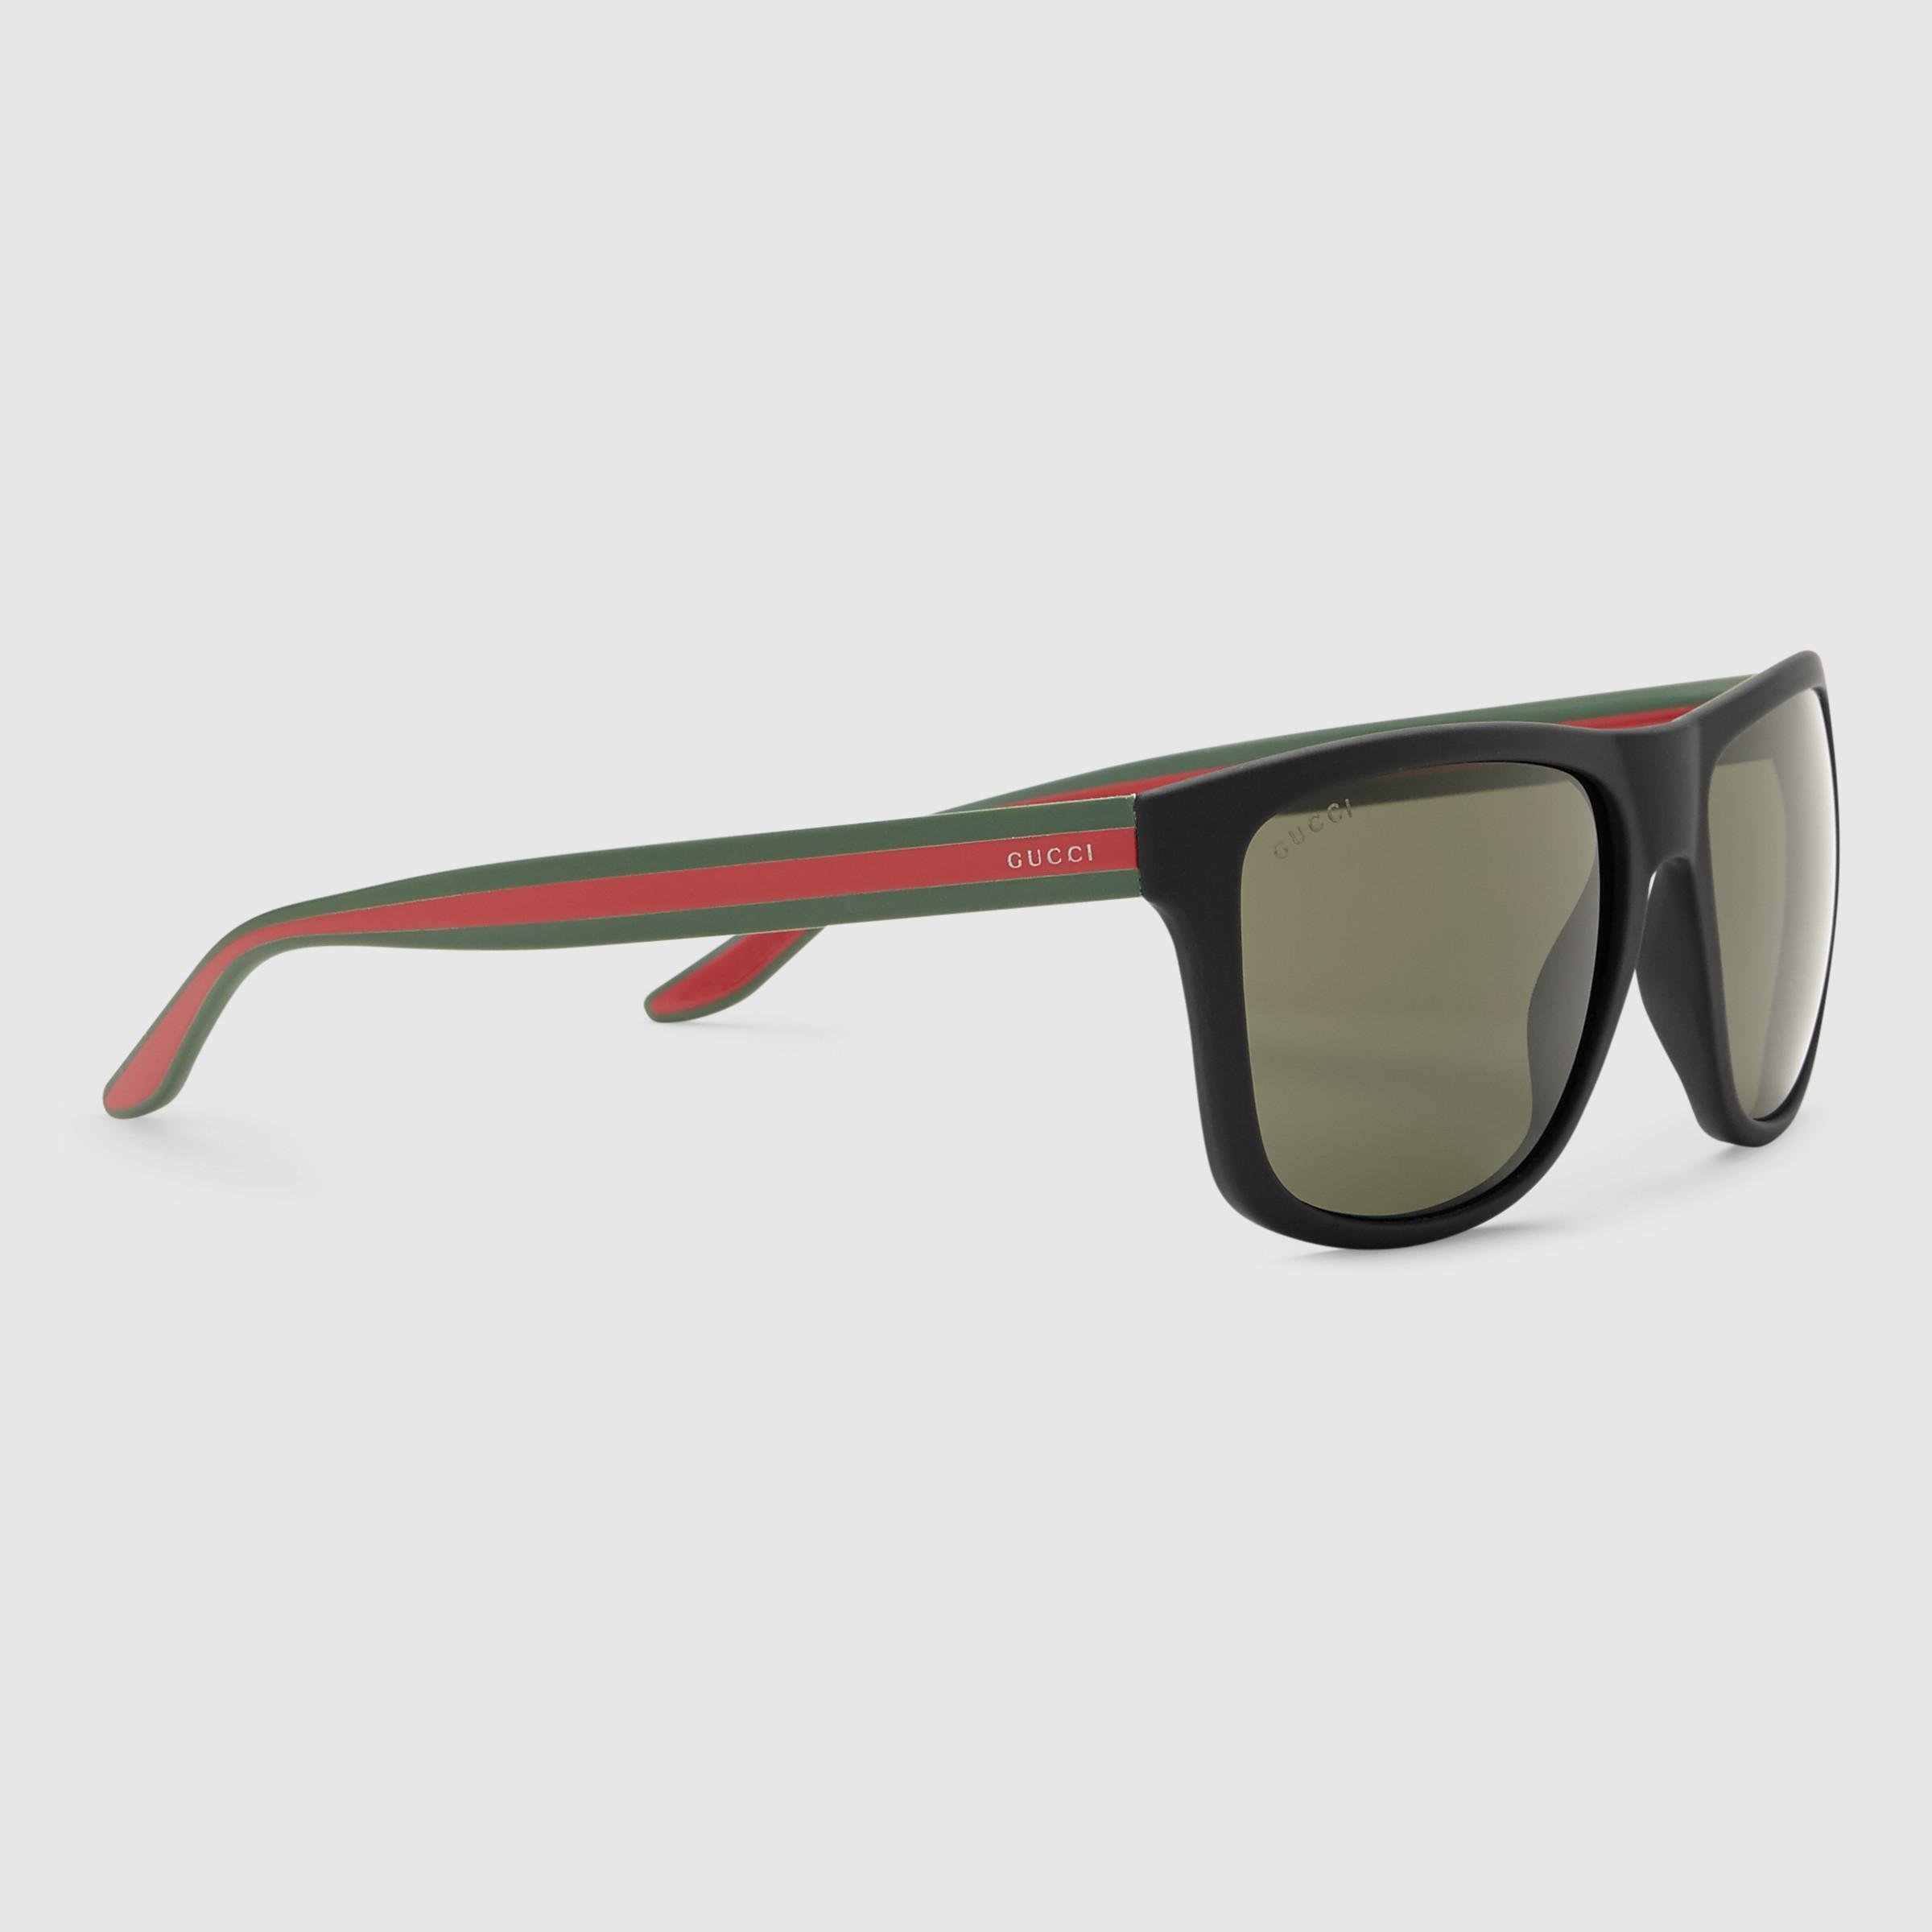 57a7ac3fa4 Square And Rectangle Gucci Sunglasses Mens - Bitterroot Public Library